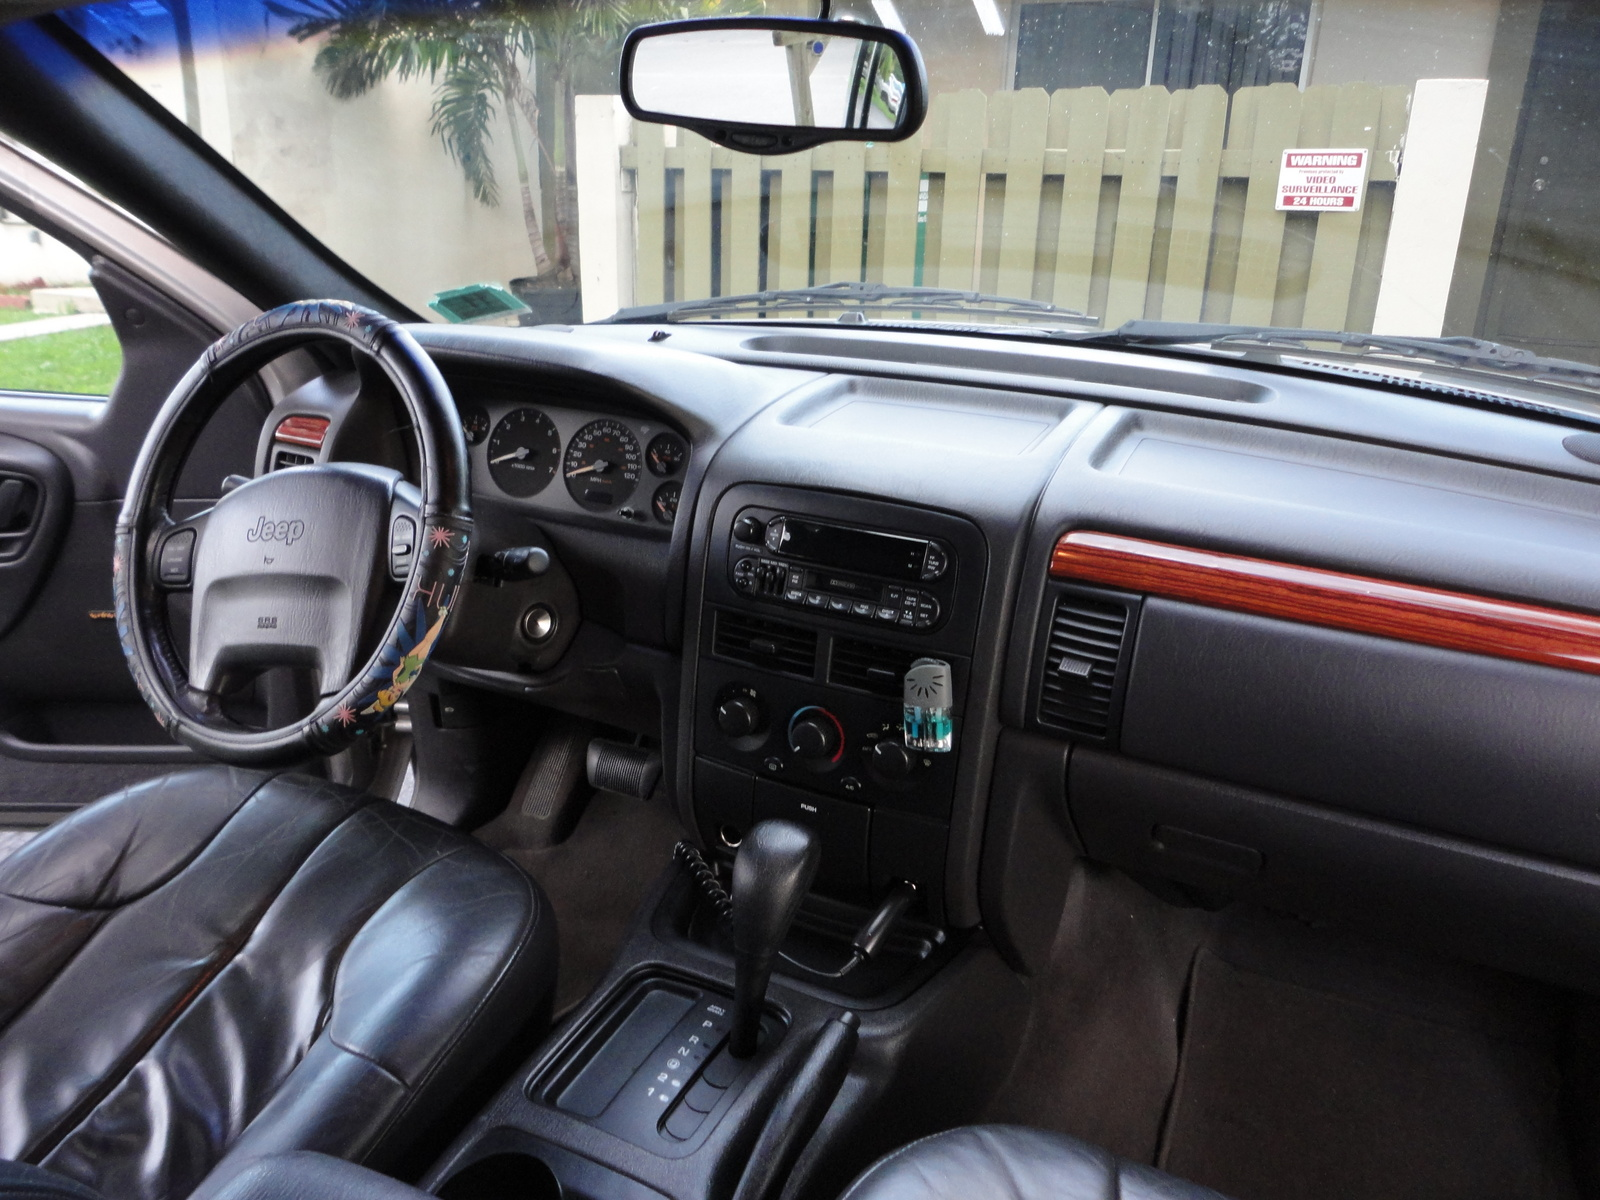 1999 jeep grand cherokee interior pictures to pin on pinterest pinsdaddy. Black Bedroom Furniture Sets. Home Design Ideas